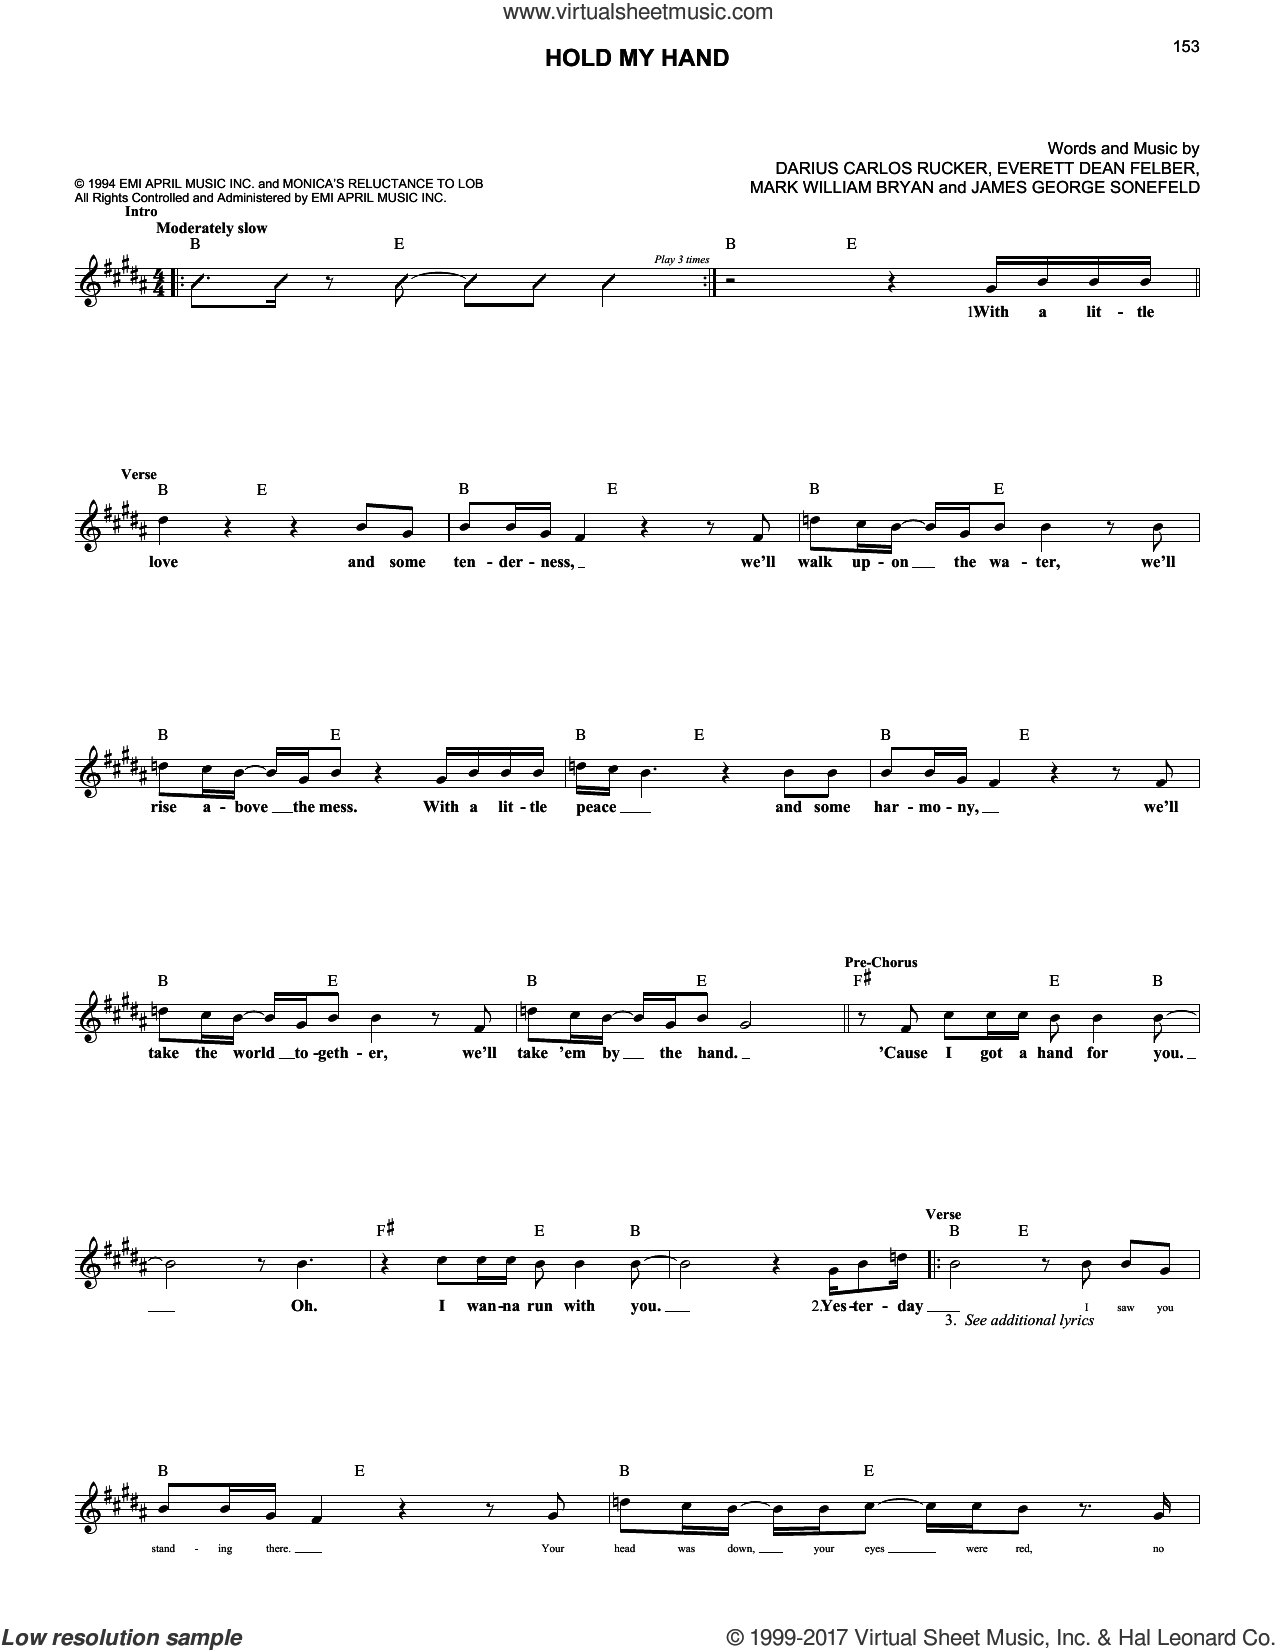 Hold My Hand sheet music for voice and other instruments (fake book) by Hootie & The Blowfish, Darius Carlos Rucker, Everett Dean Felber, James George Sonefeld and Mark William Bryan, intermediate skill level